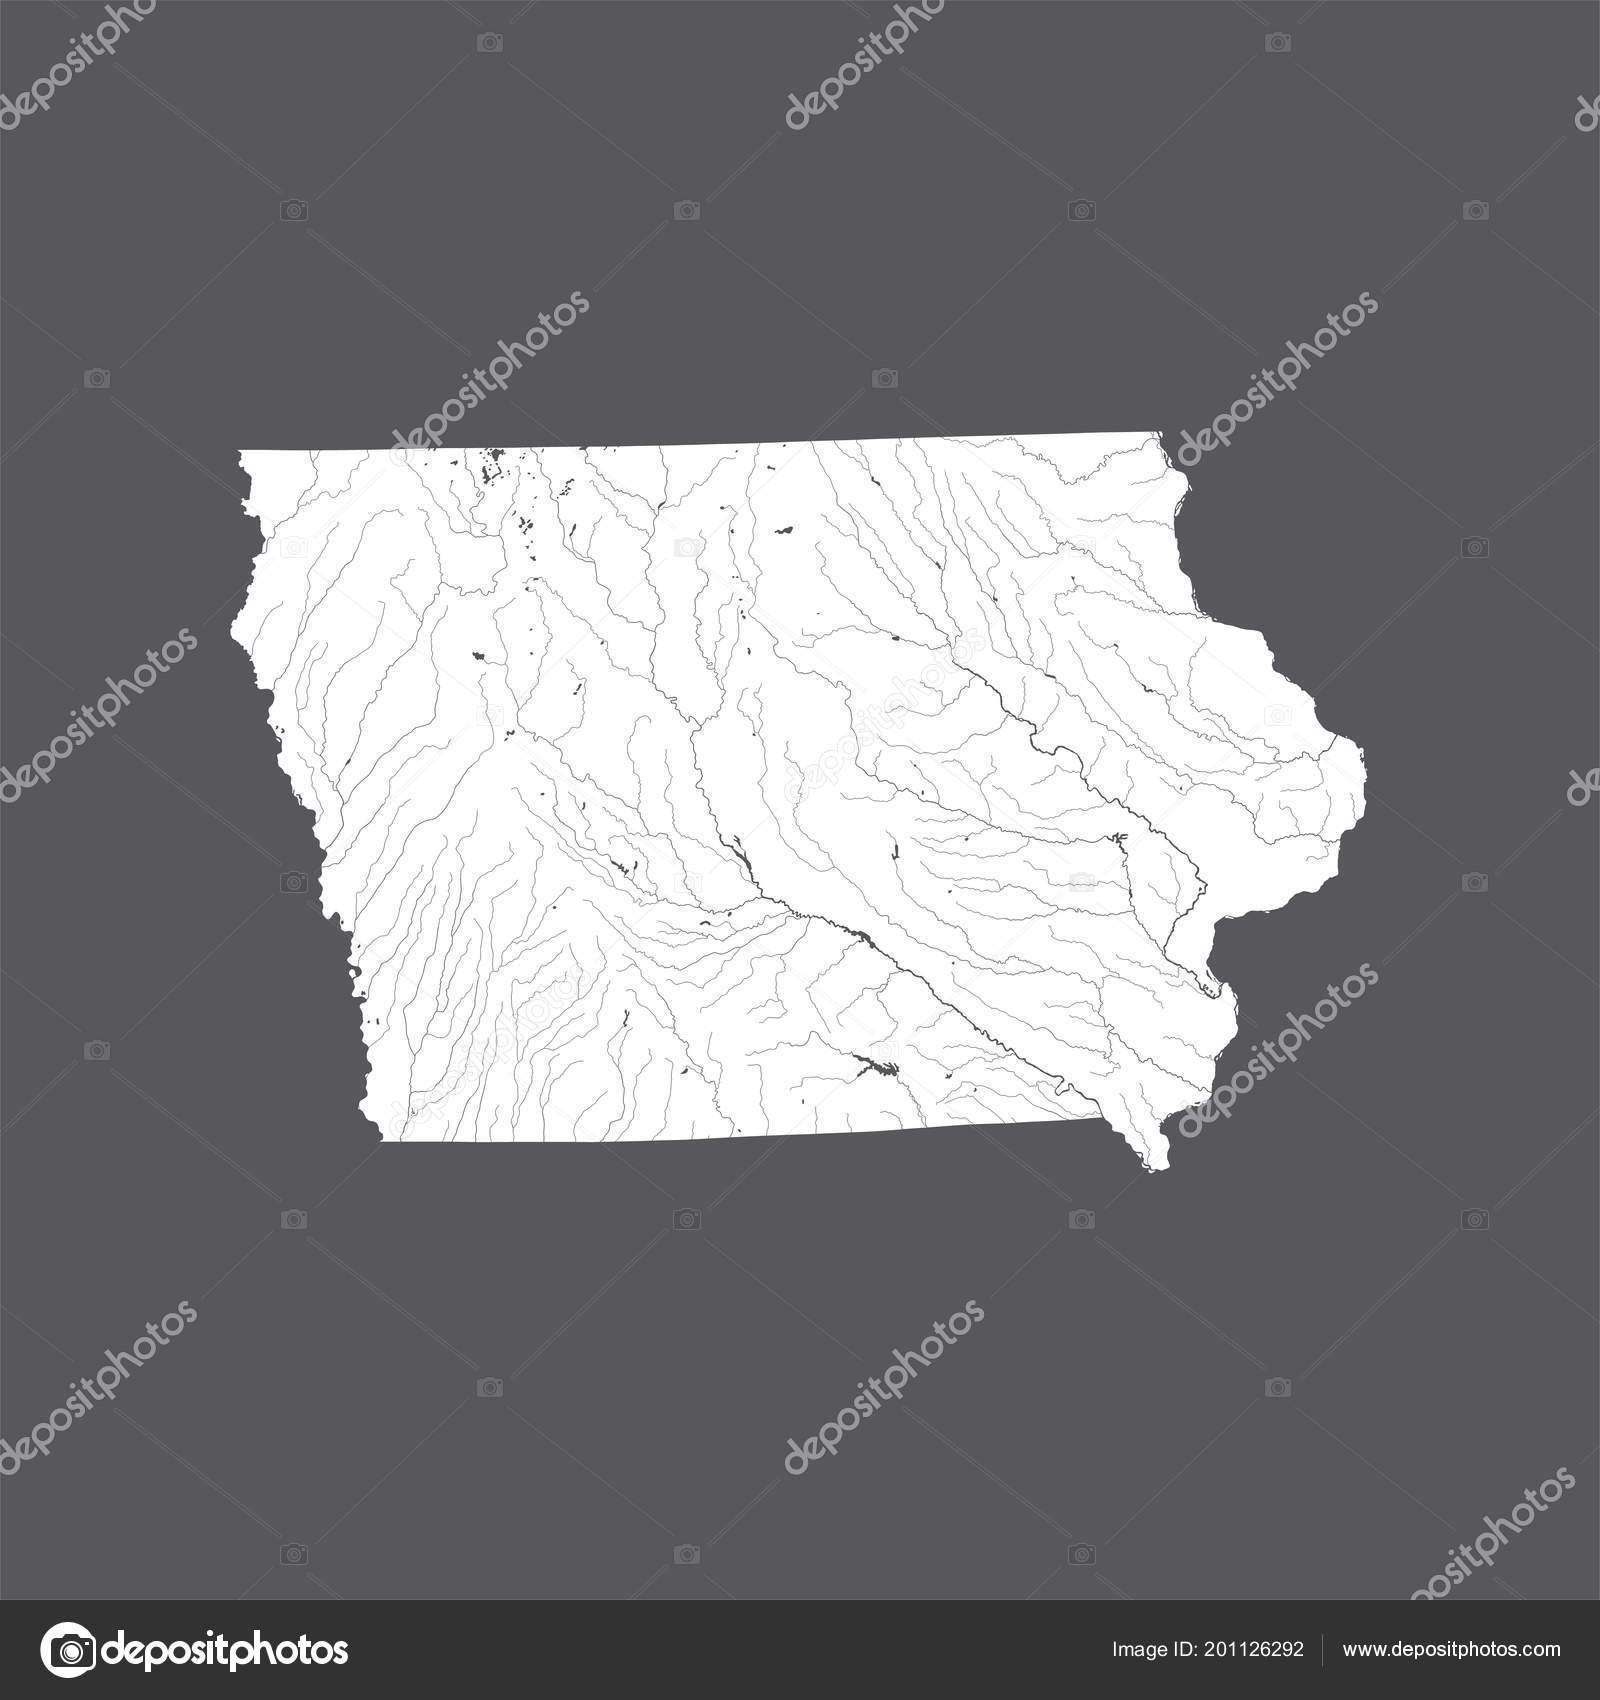 States Map Iowa Hand Made Rivers Lakes Shown Please Look Stock Vector C Mshch1 201126292